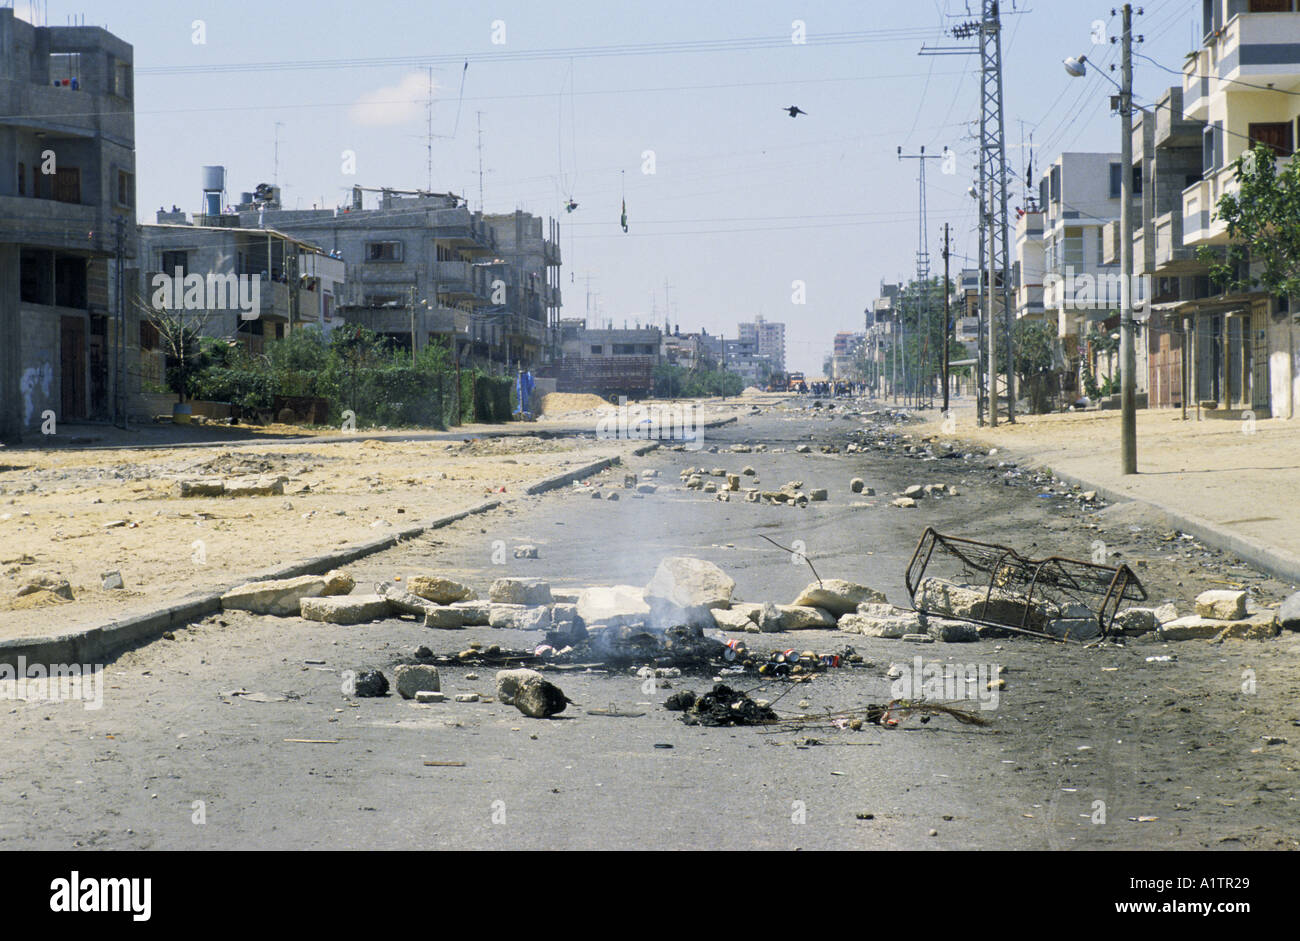 GAZA UPRISING INTIFADA .STREET BLOCKADE APRIL 1988 - Stock Image